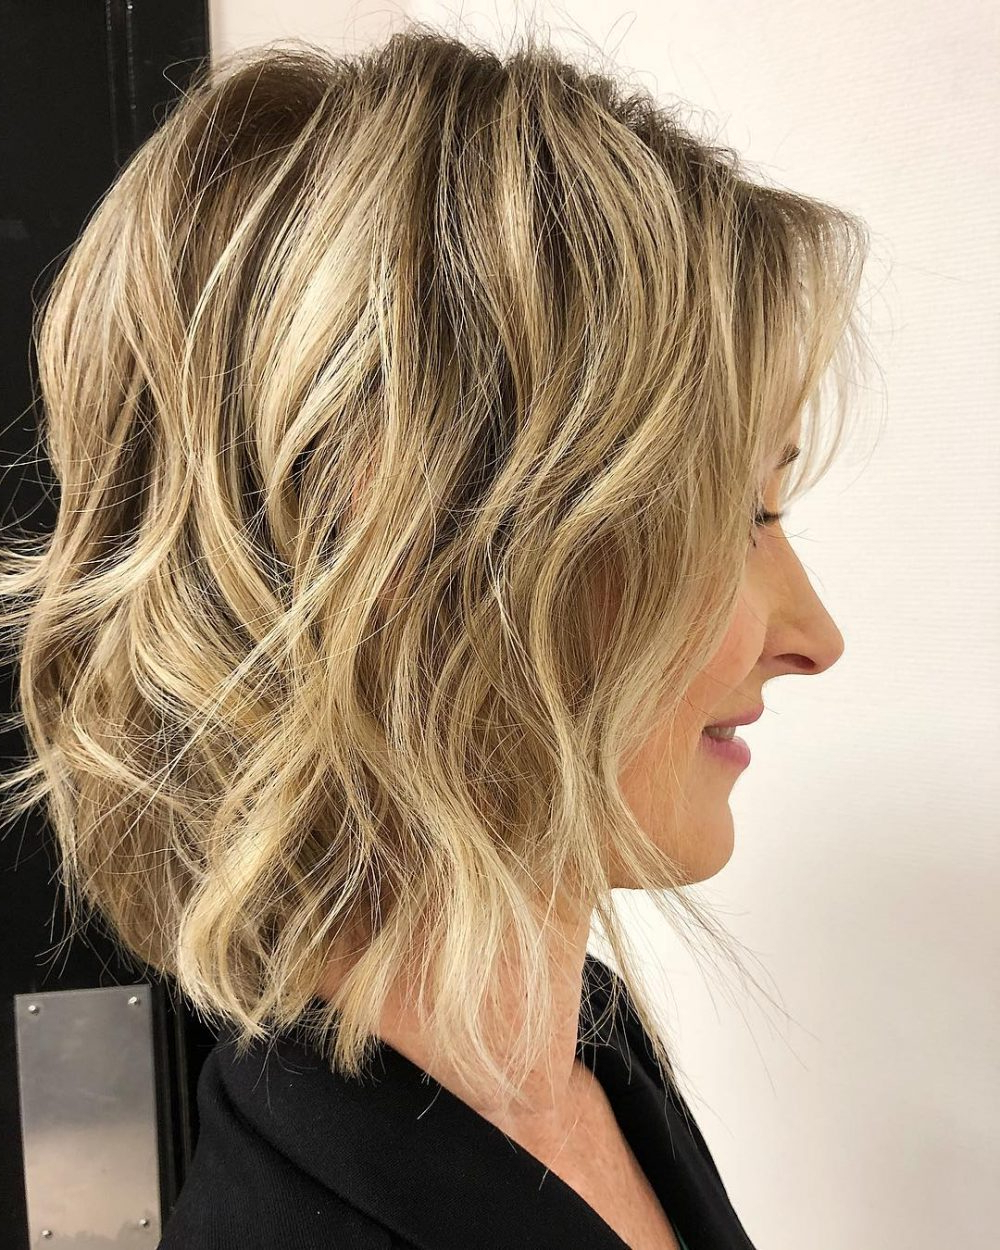 43 Perfect Short Hairstyles For Fine Hair In 2018 Intended For Hairstyles For Short Curly Fine Hair (View 4 of 25)